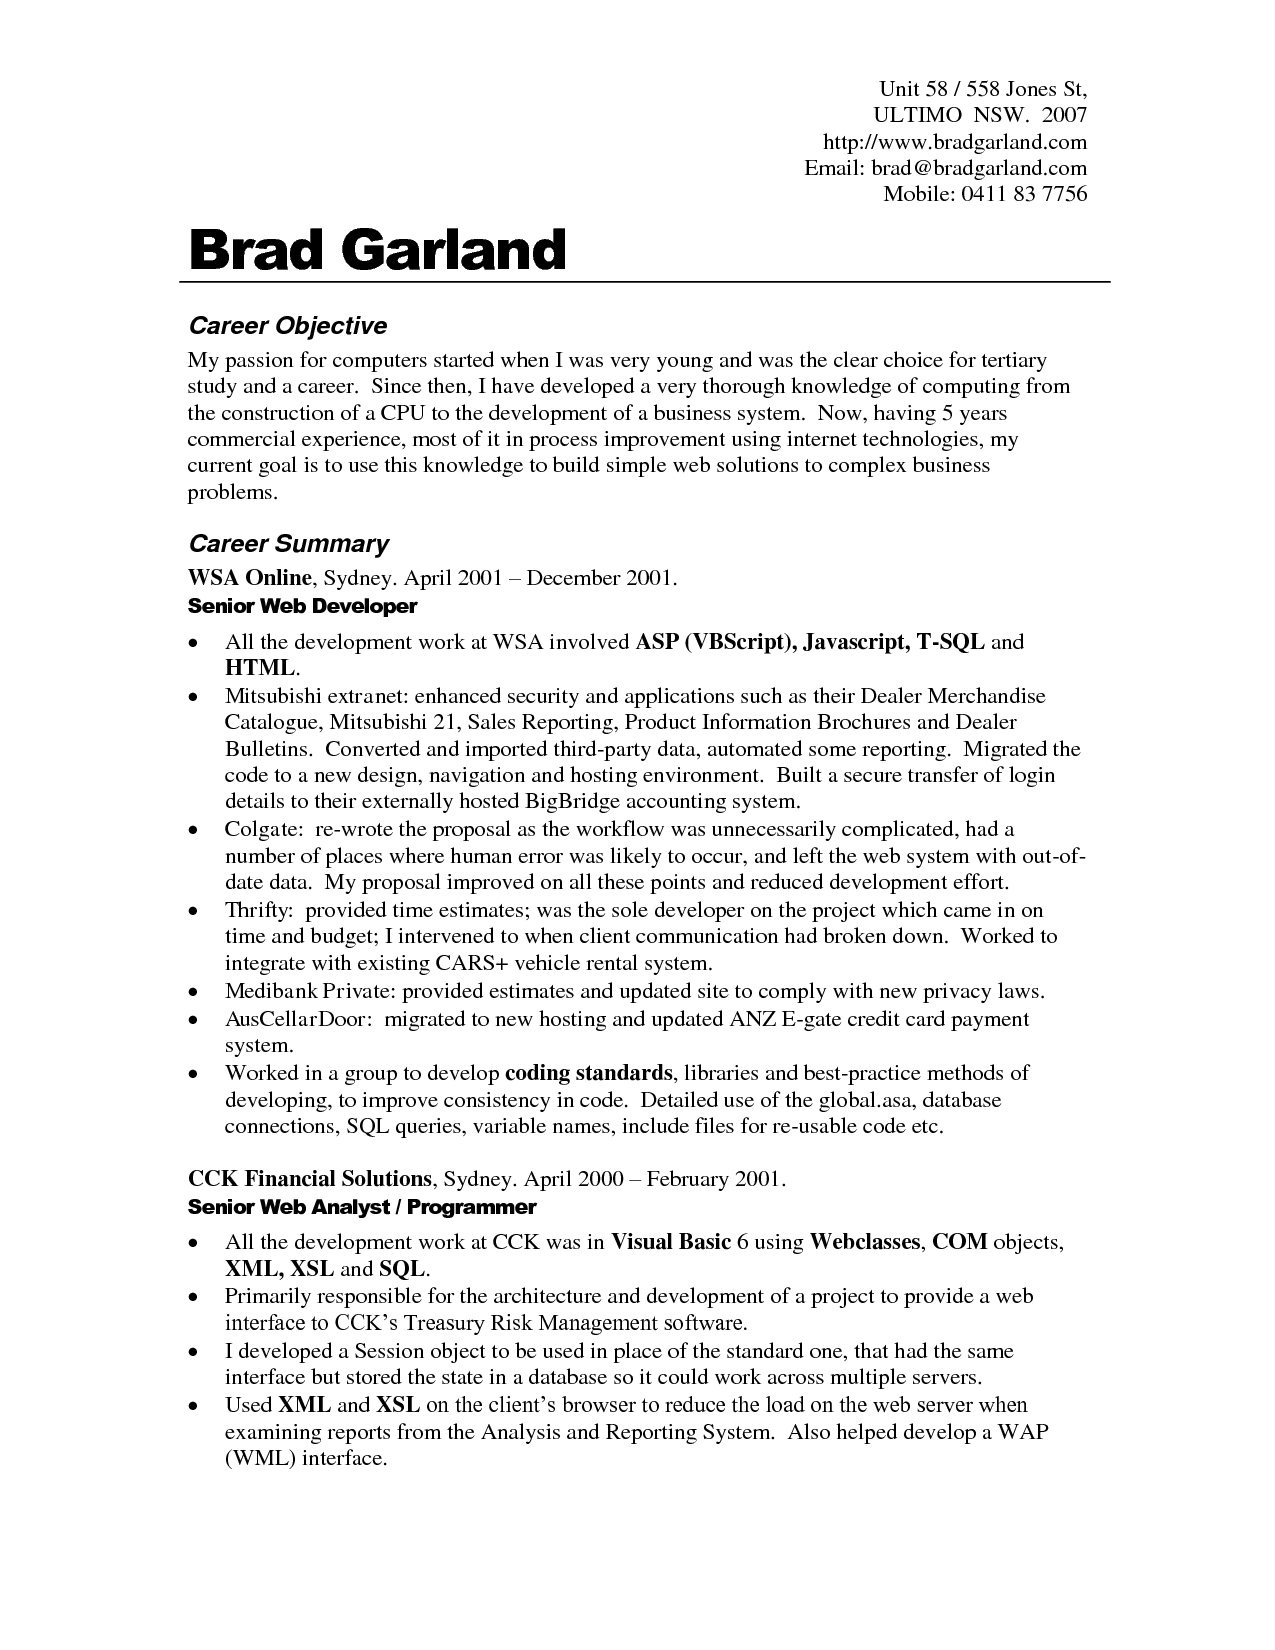 Resume Mission Statement Examples Resume Objectives Examples Best Templateresume Objective Examples